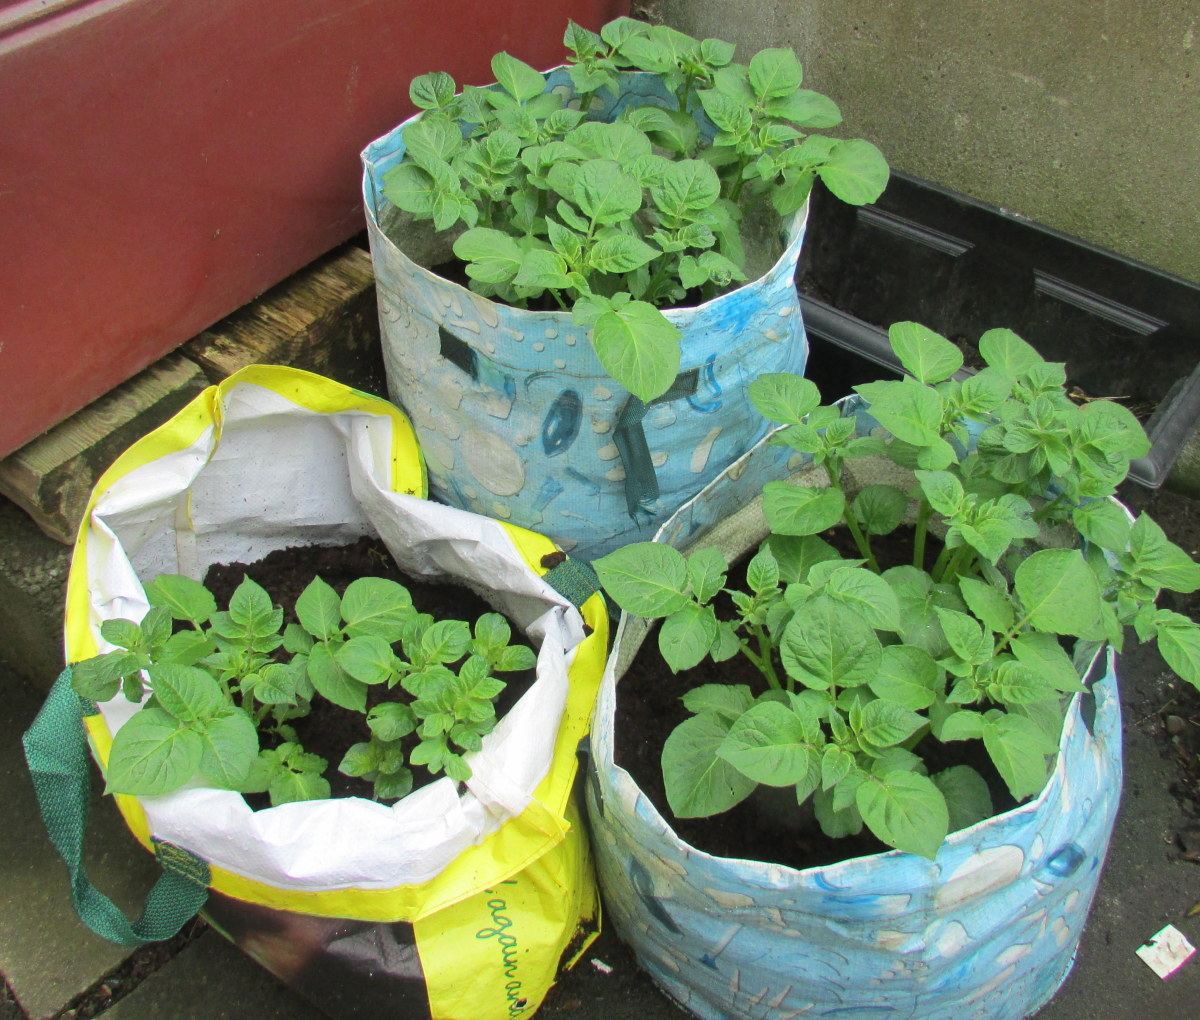 How to Grow Potatoes in Small Garden Bags